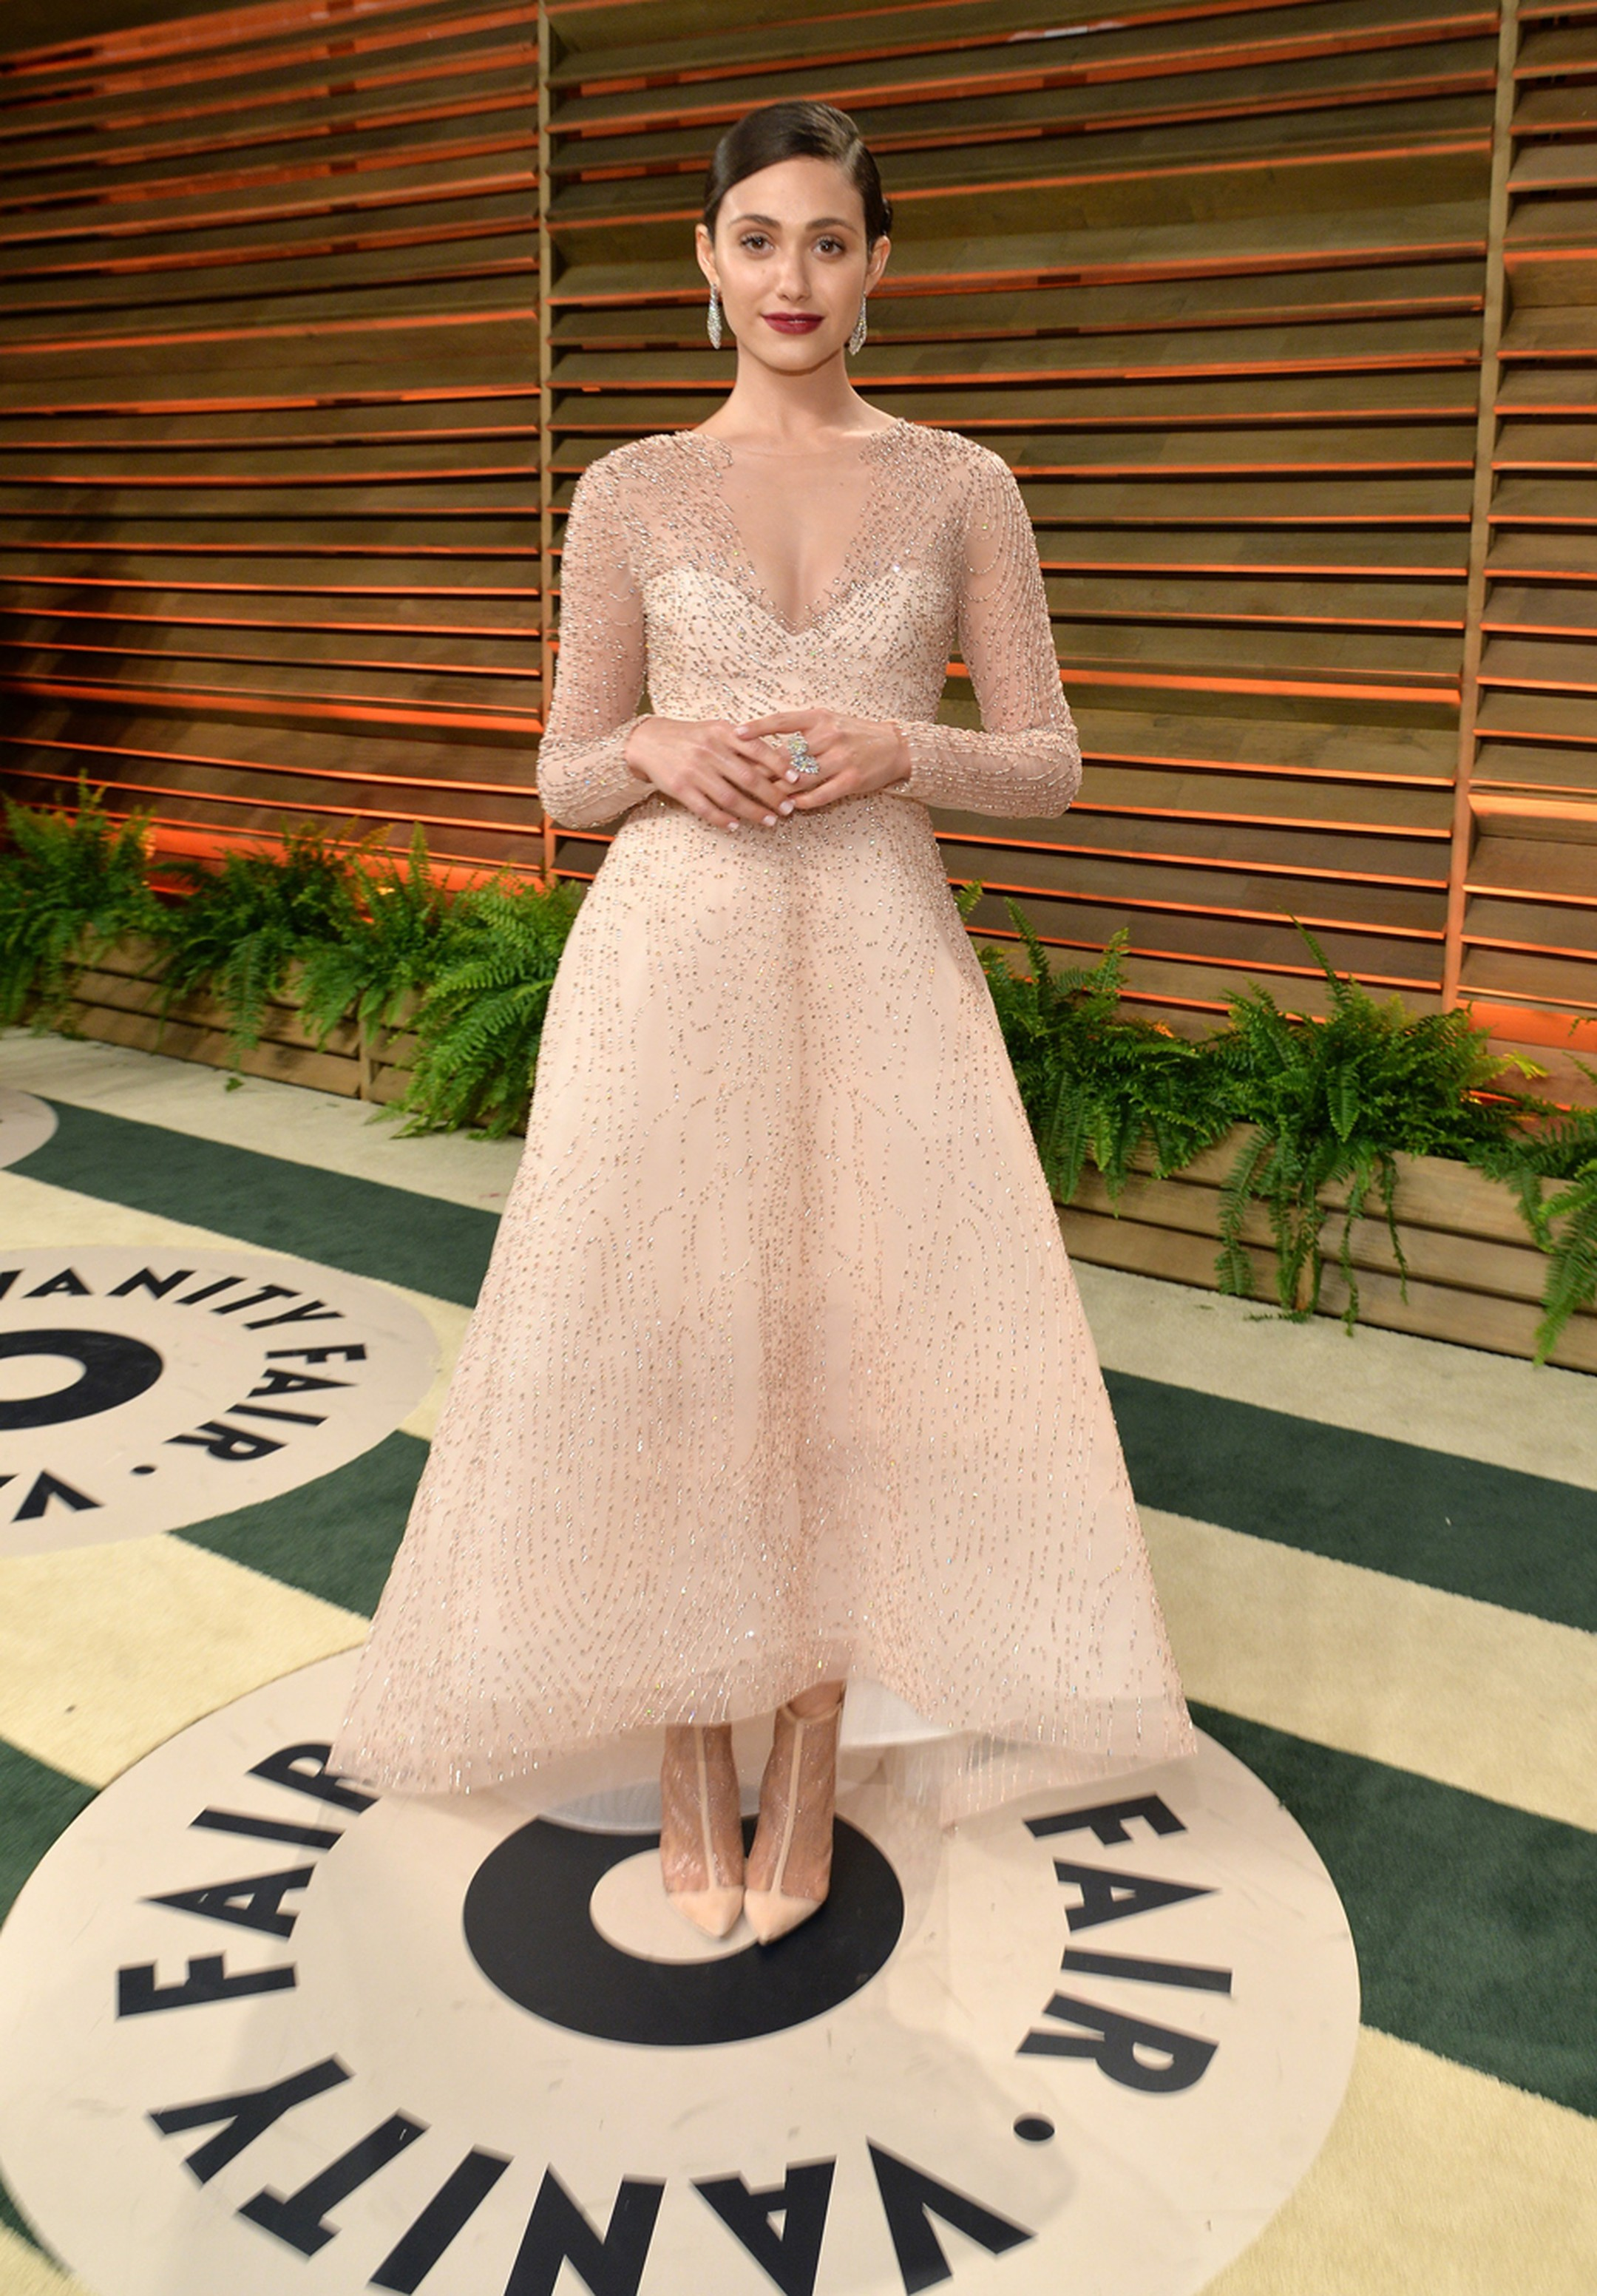 Emmy Rossum at the Vanity Fair after party wearing a shimmering Monique Lhuillier dress with Chopard jewels.